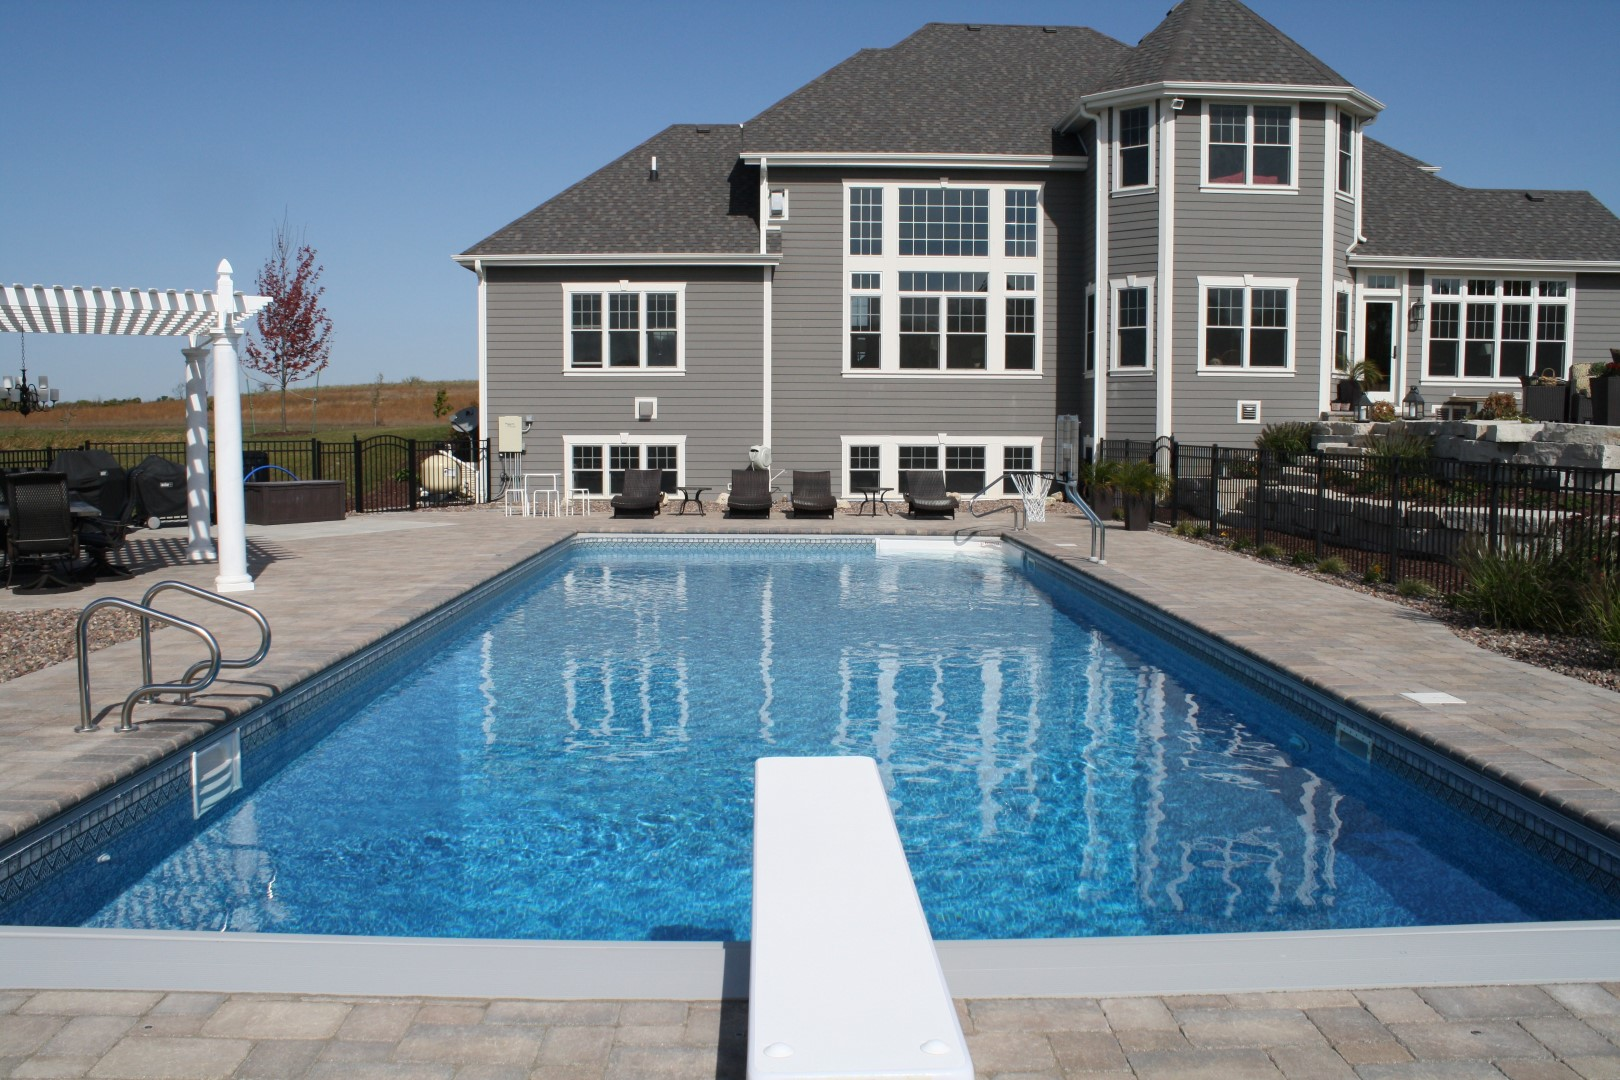 Inground Pool Prices - Pool Quotes Waukesha